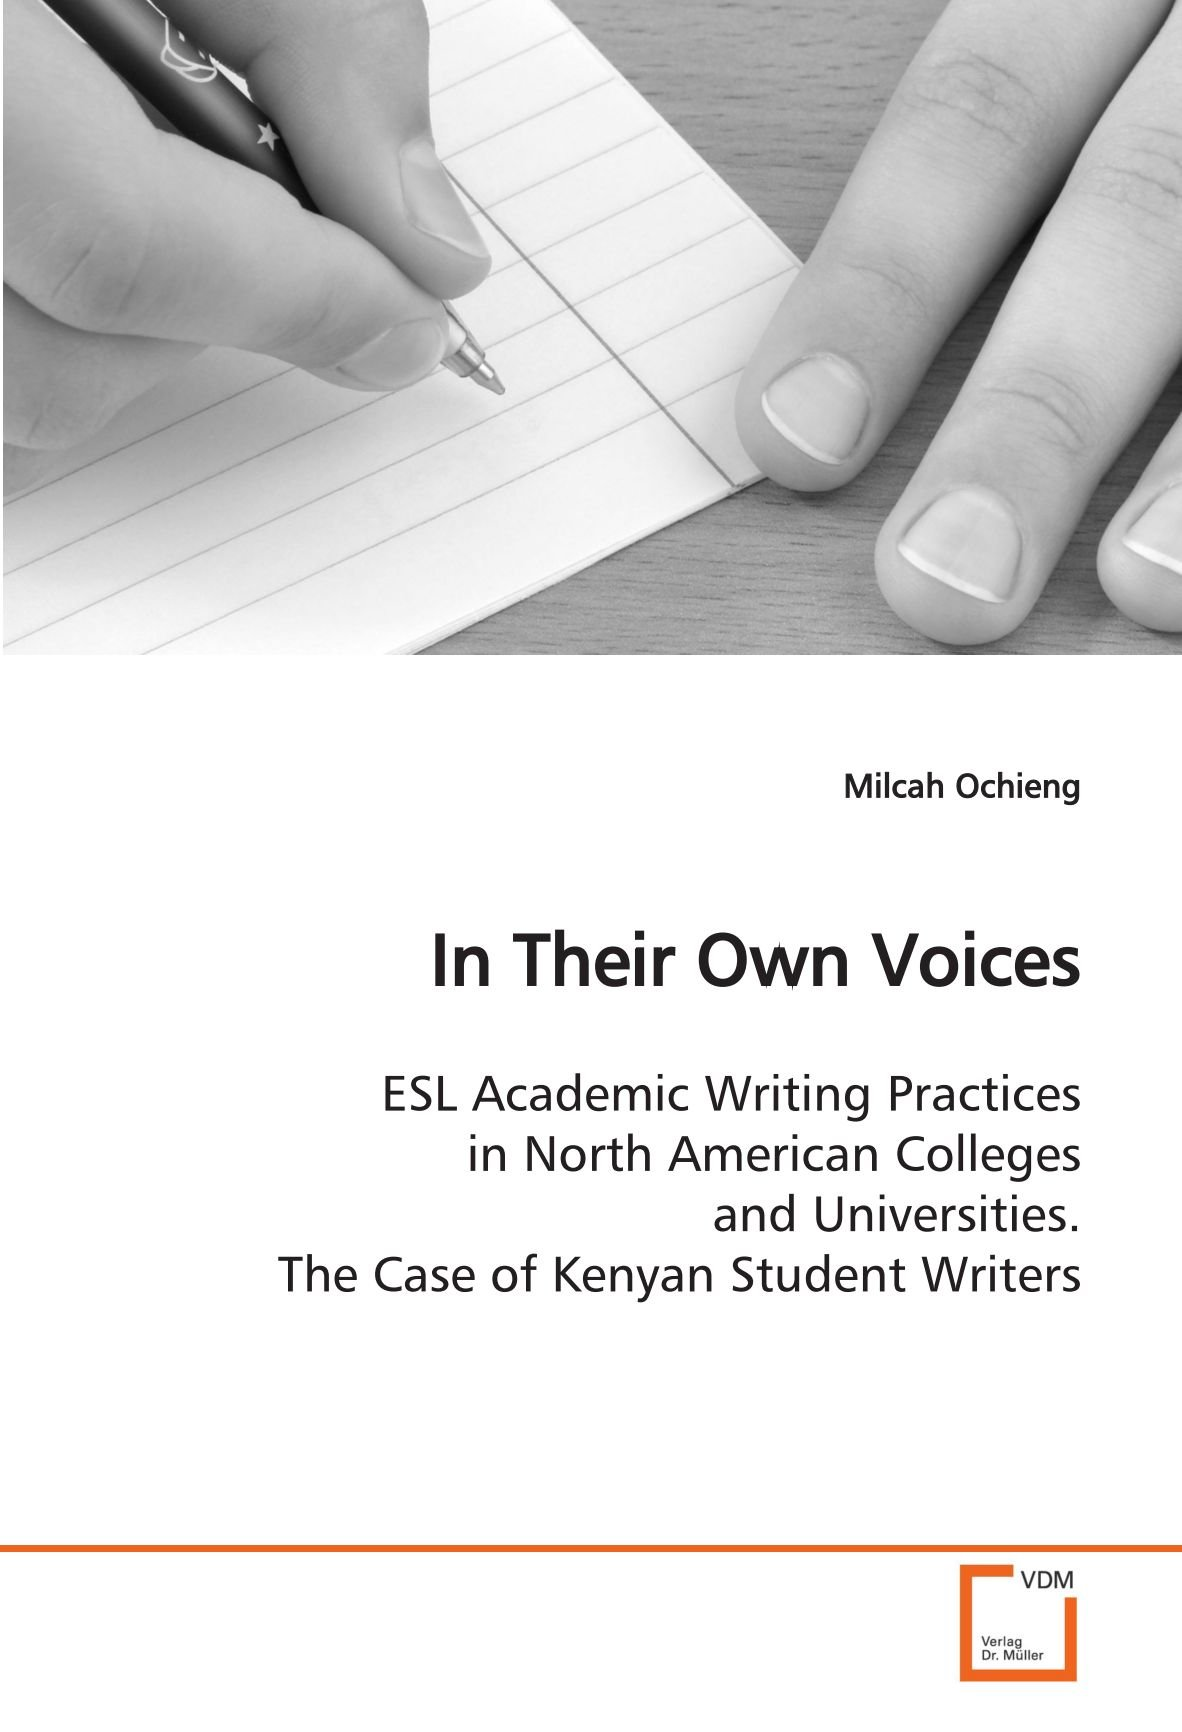 Read Online In Their Own Voices: ESL Academic Writing Practices in North American Colleges and Universities. The Case of Kenyan Student Writers pdf epub